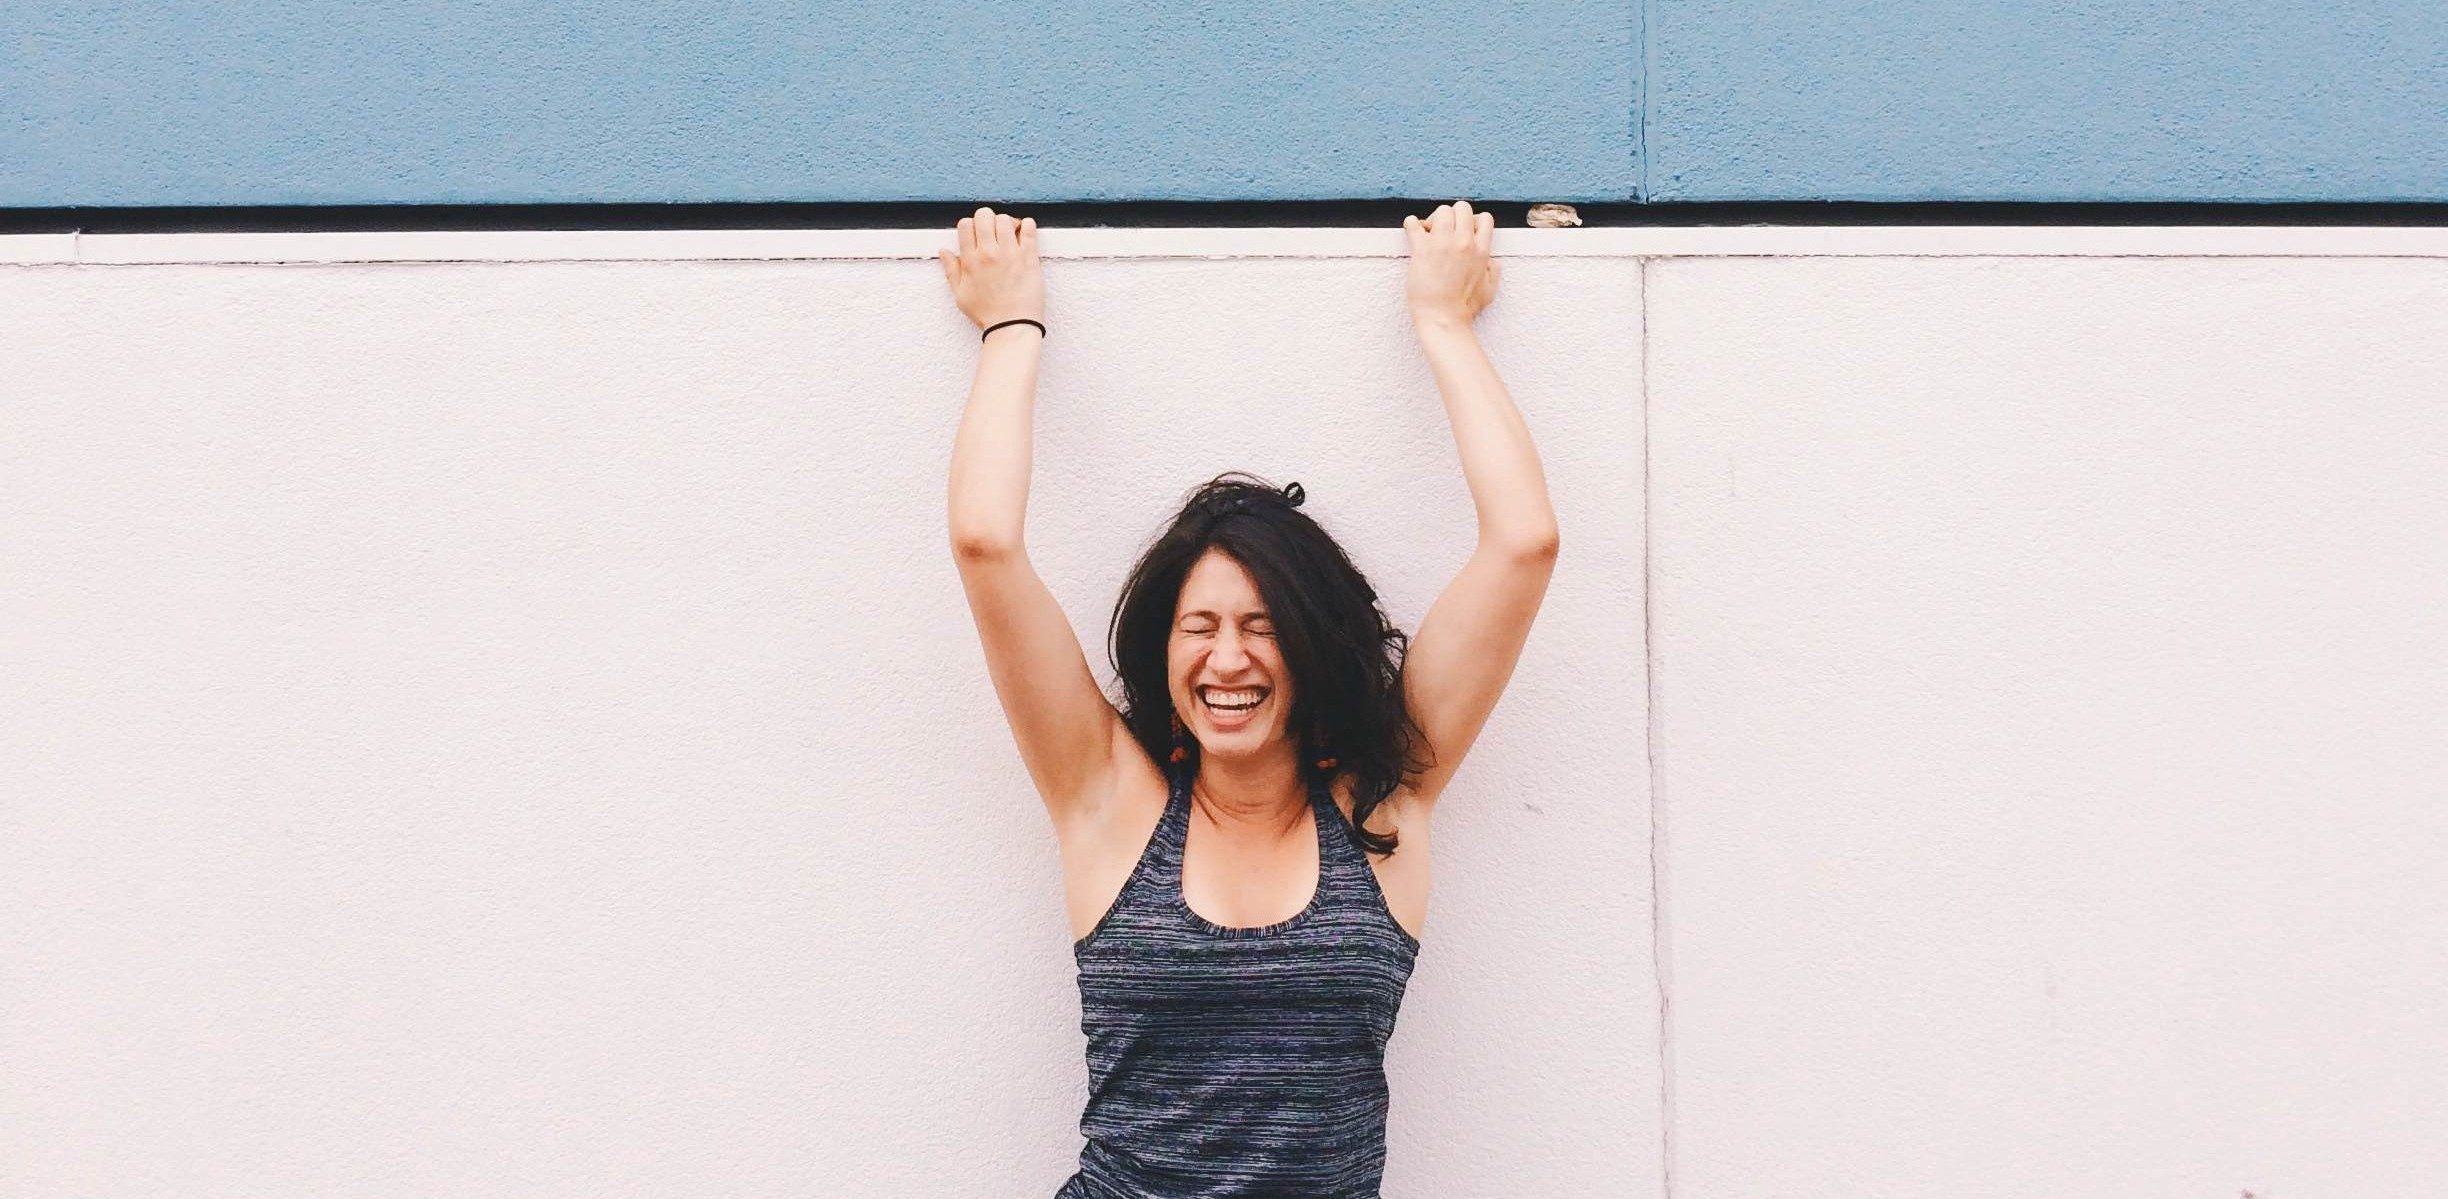 7 Things You Should Know When Starting a Workout Routine